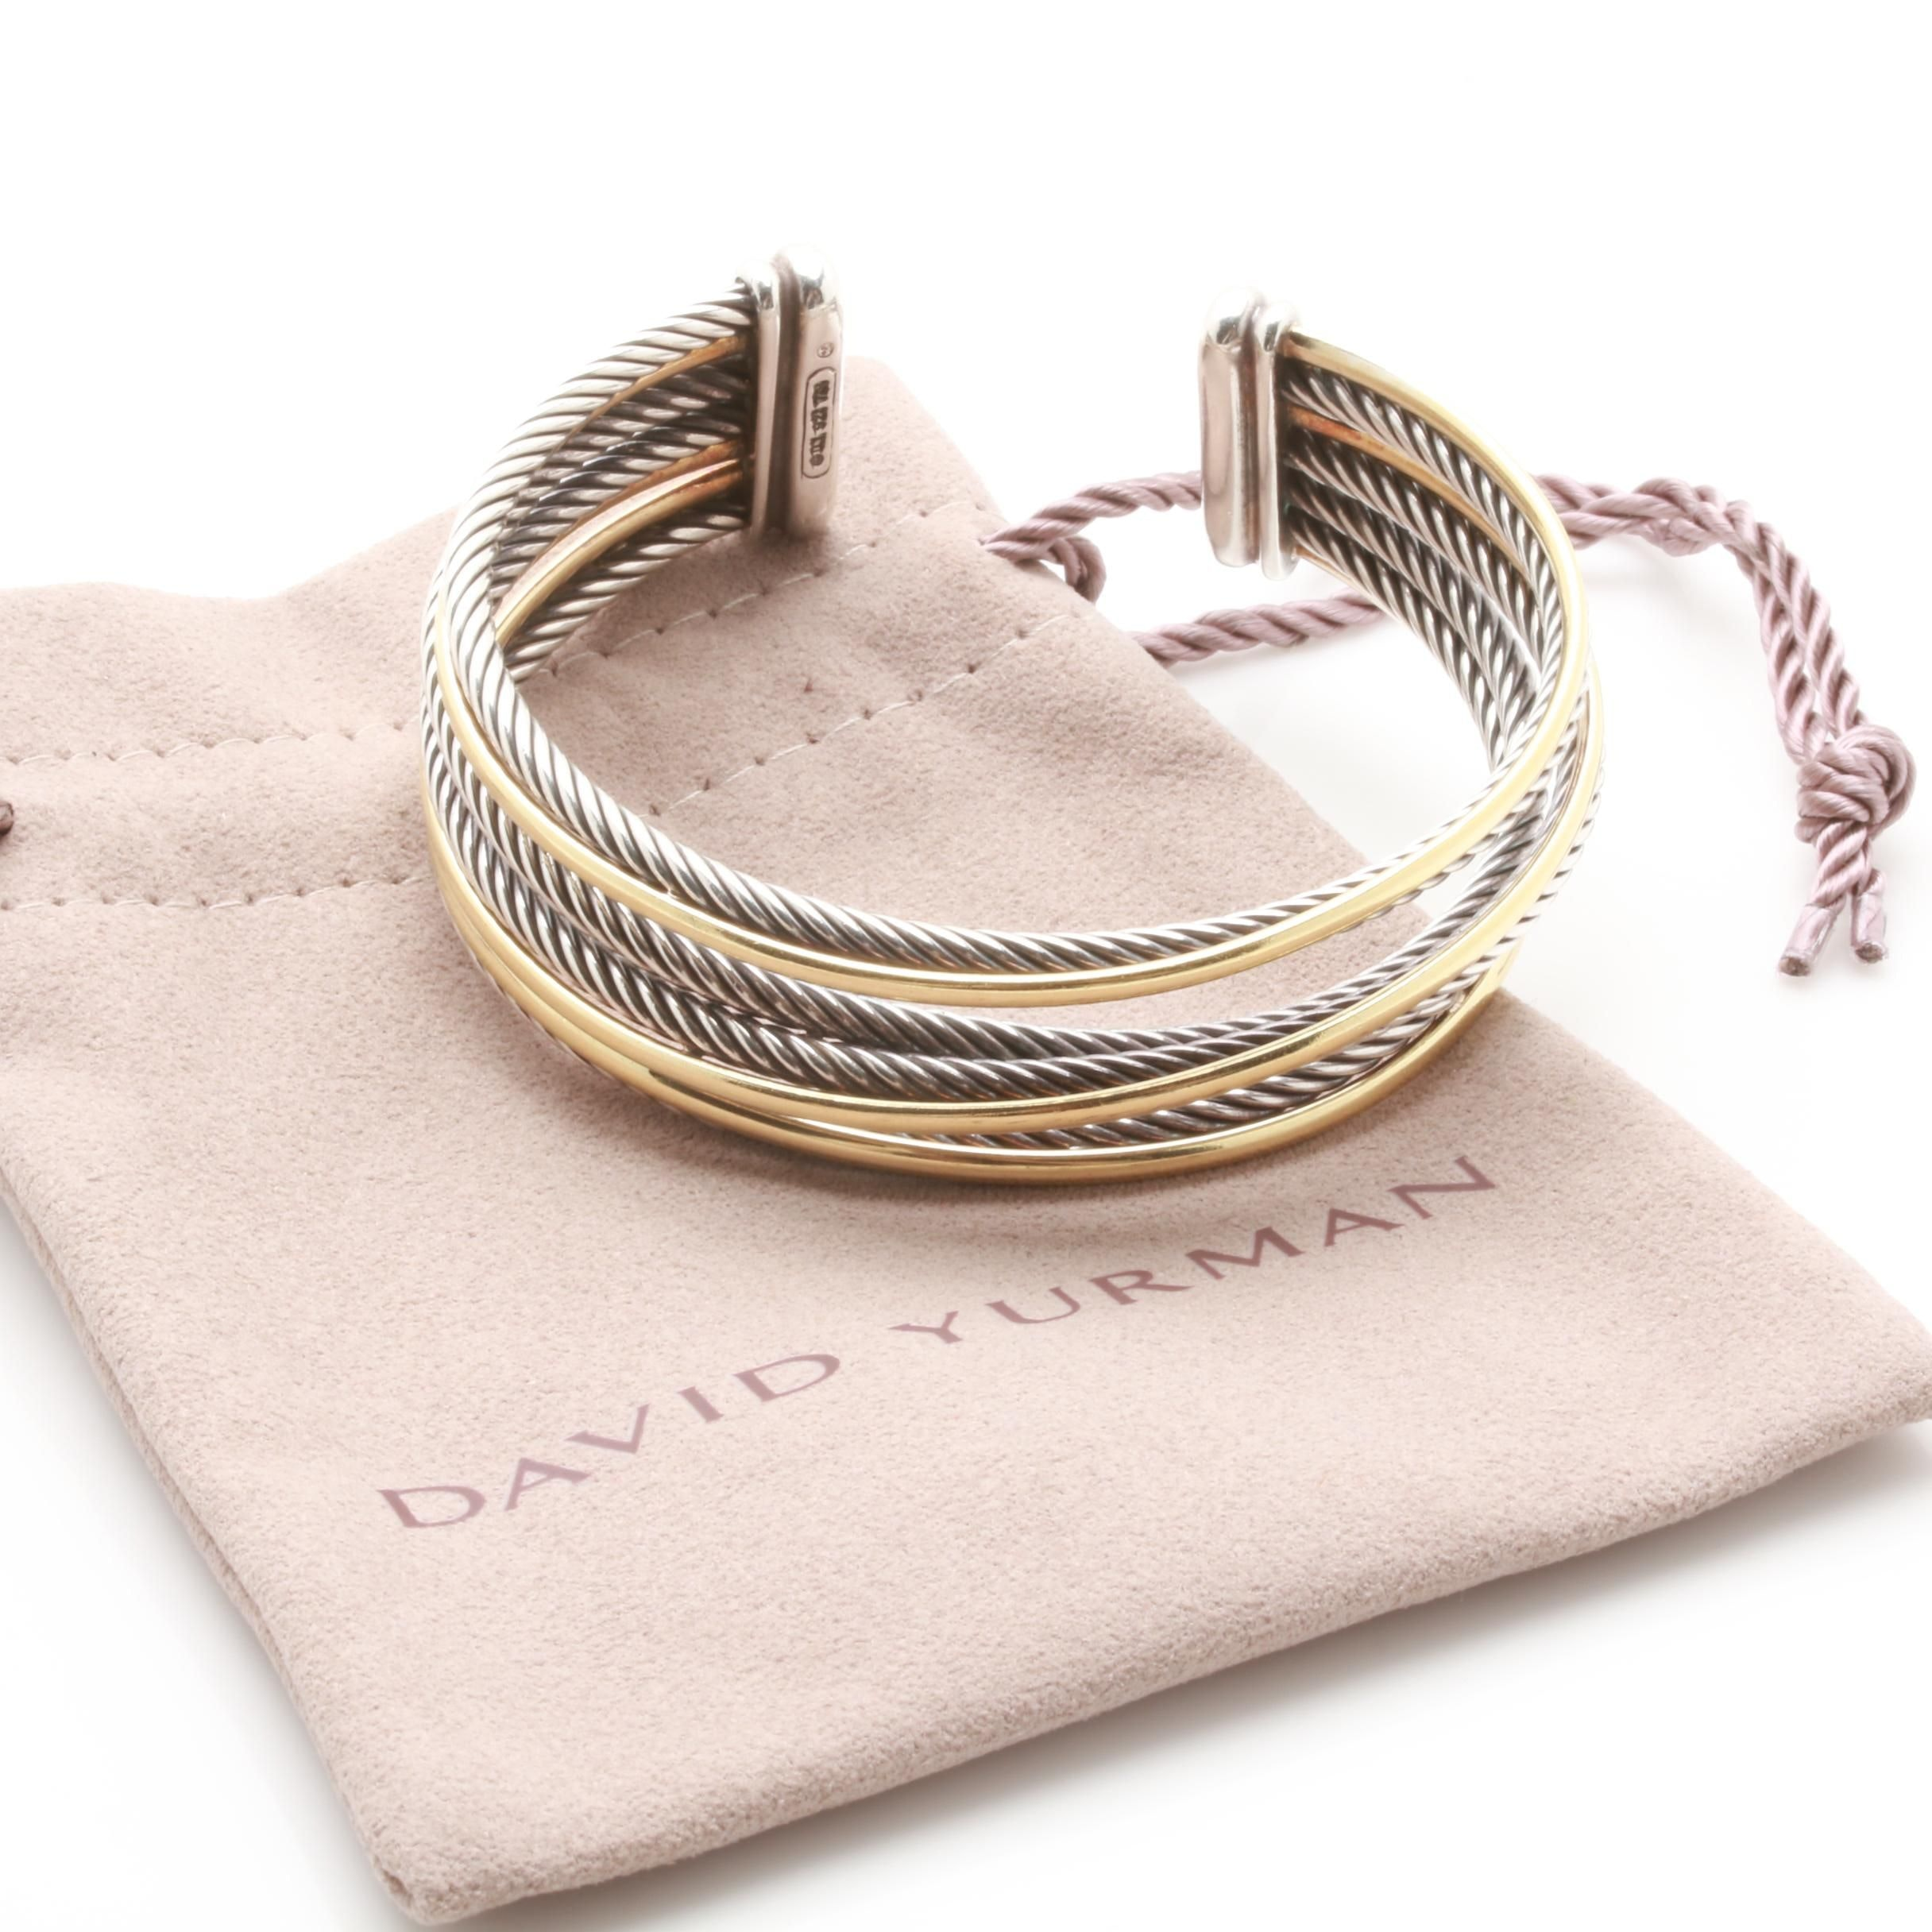 """David Yurman """"Crossover"""" Sterling Silver Cuff Bracelet With 18K Gold Accents"""